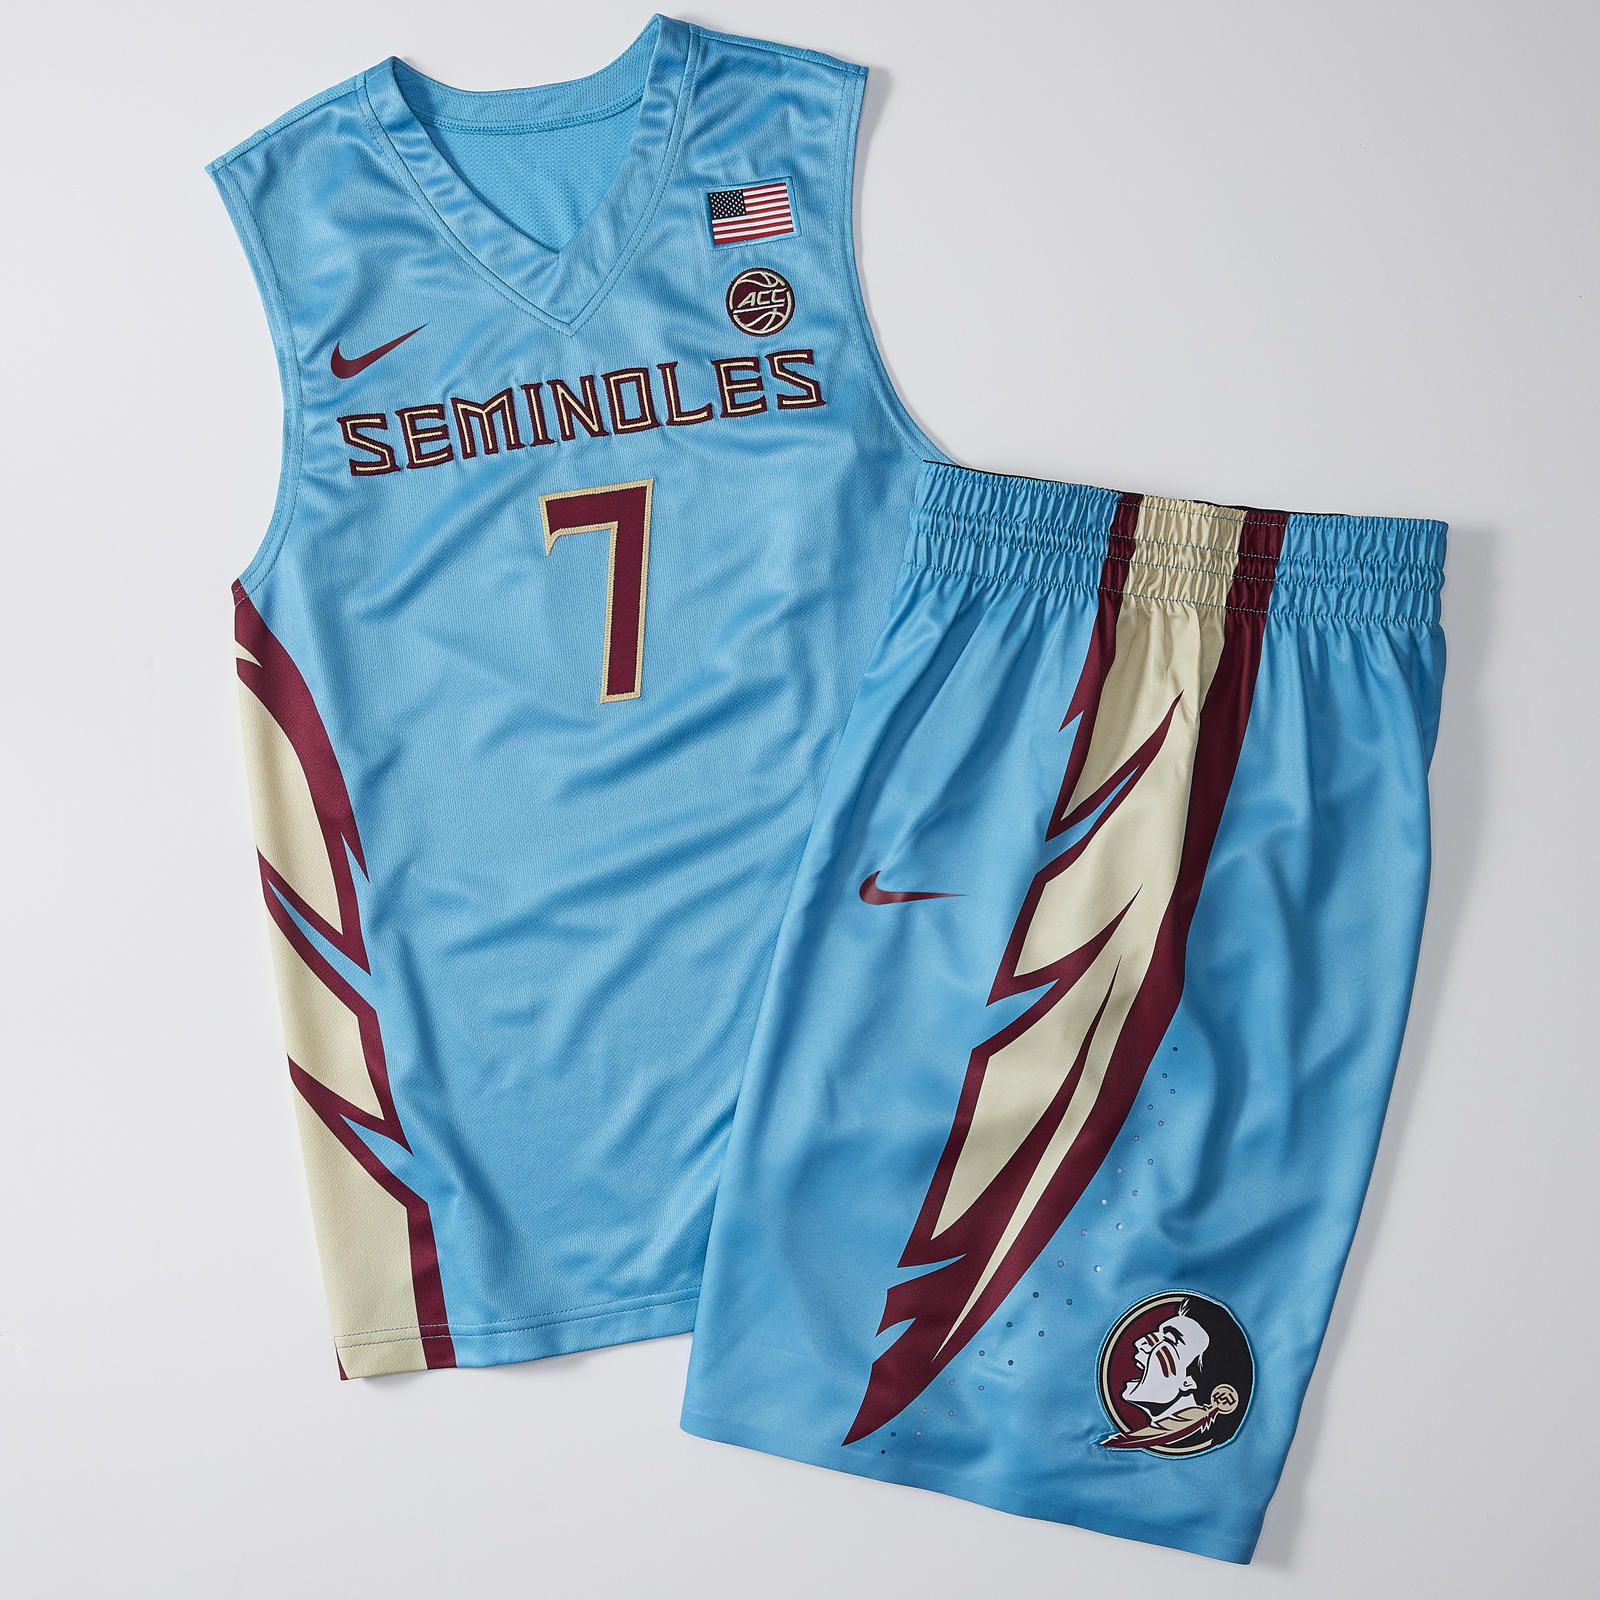 963762c1ff8 The Nike N7 College Basketball Uniform  More Than A Turquoise Jersey ...